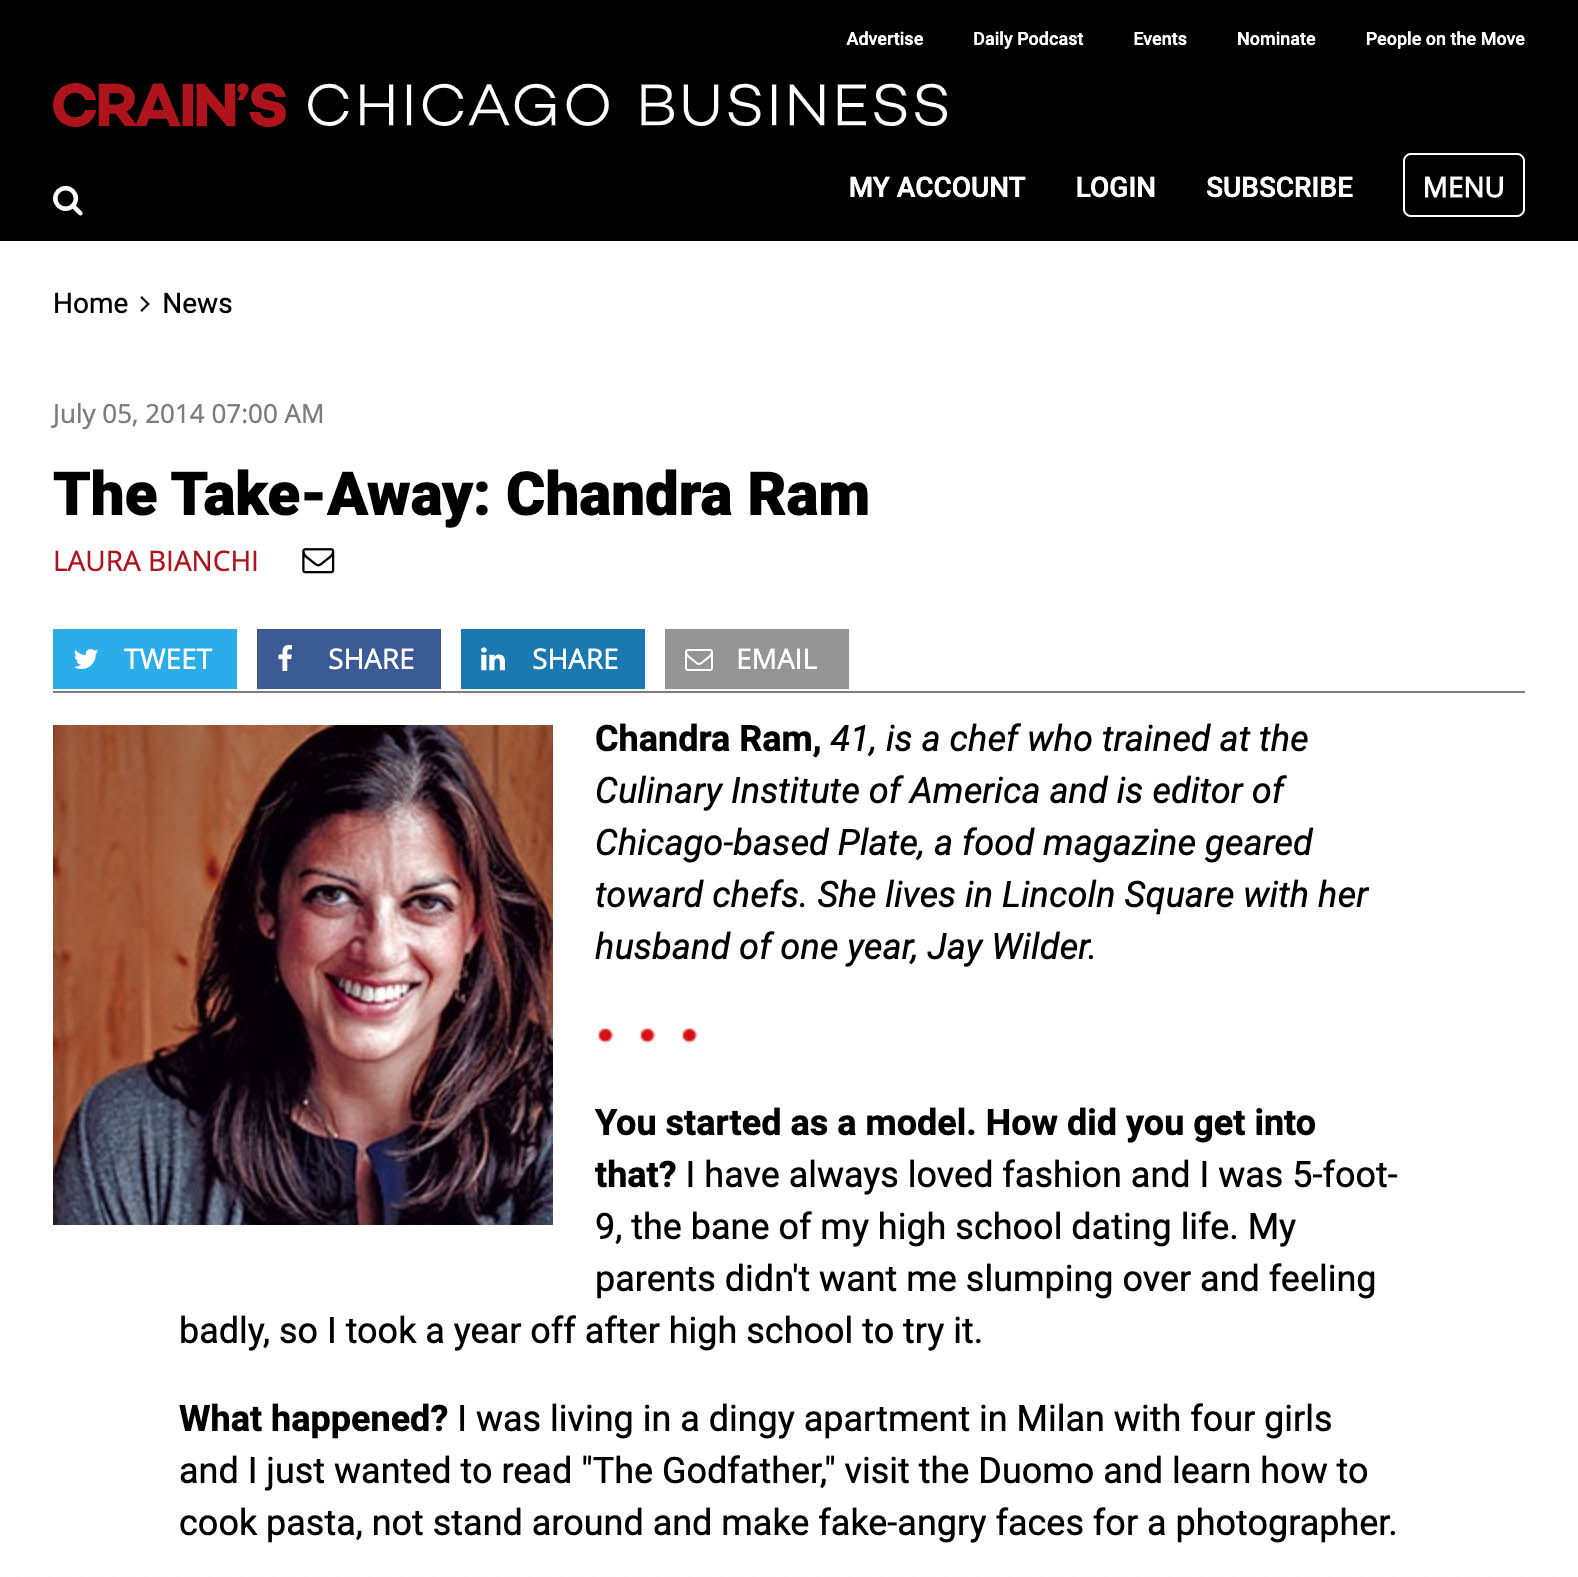 crains-chicago-business-the-take-away.jpg